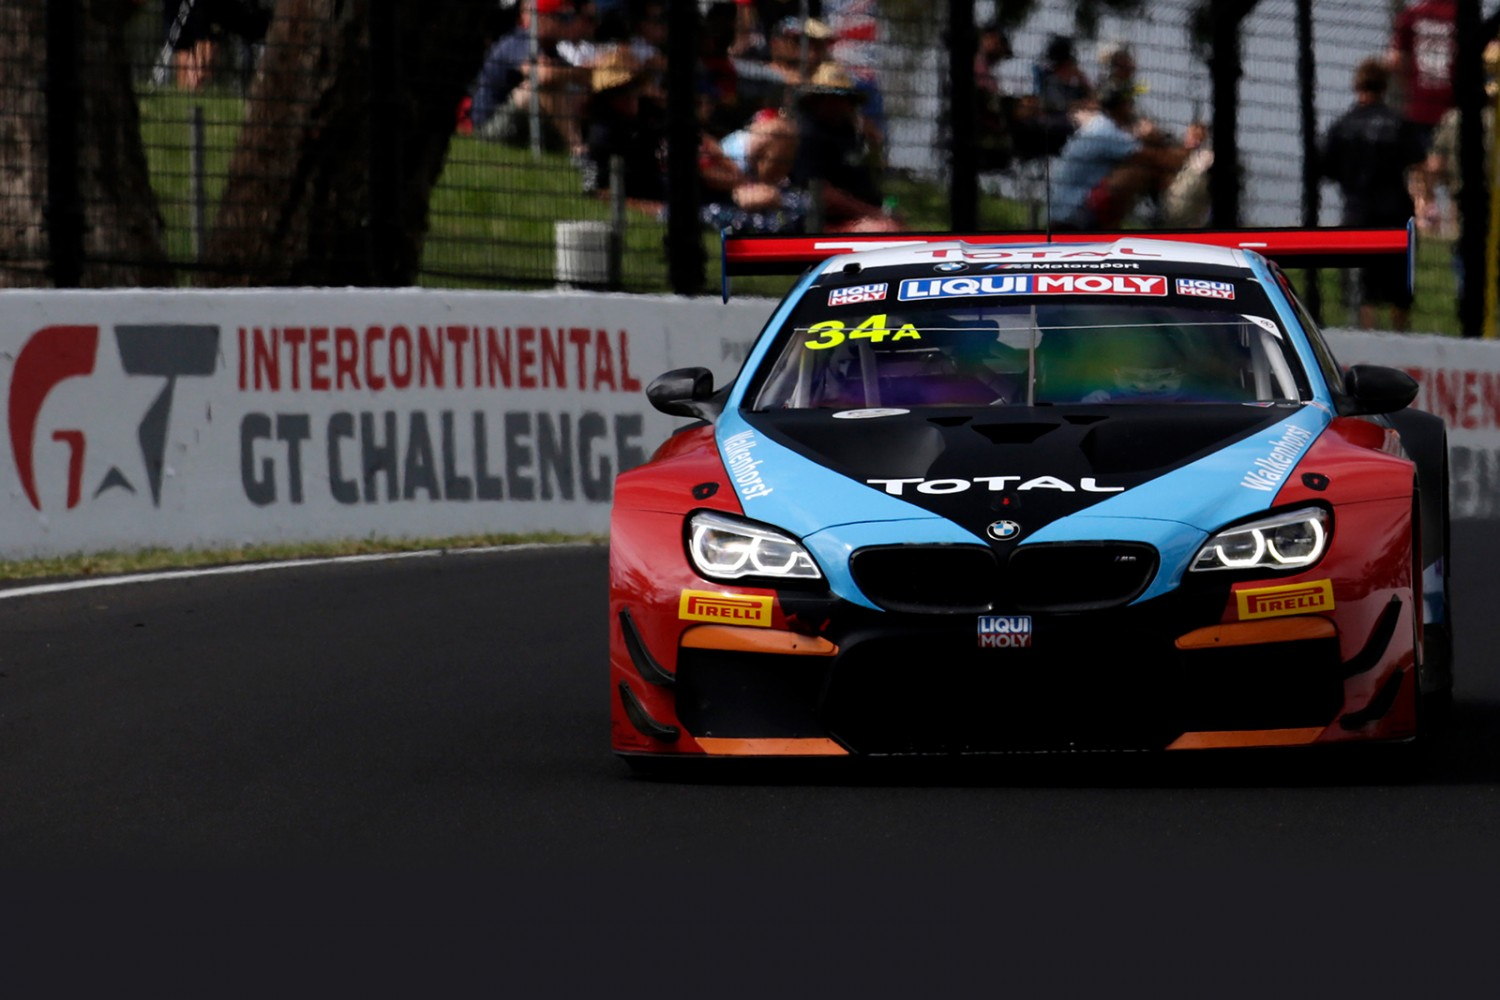 BMW latest to confirm full-season Intercontinental GT Challenge entry